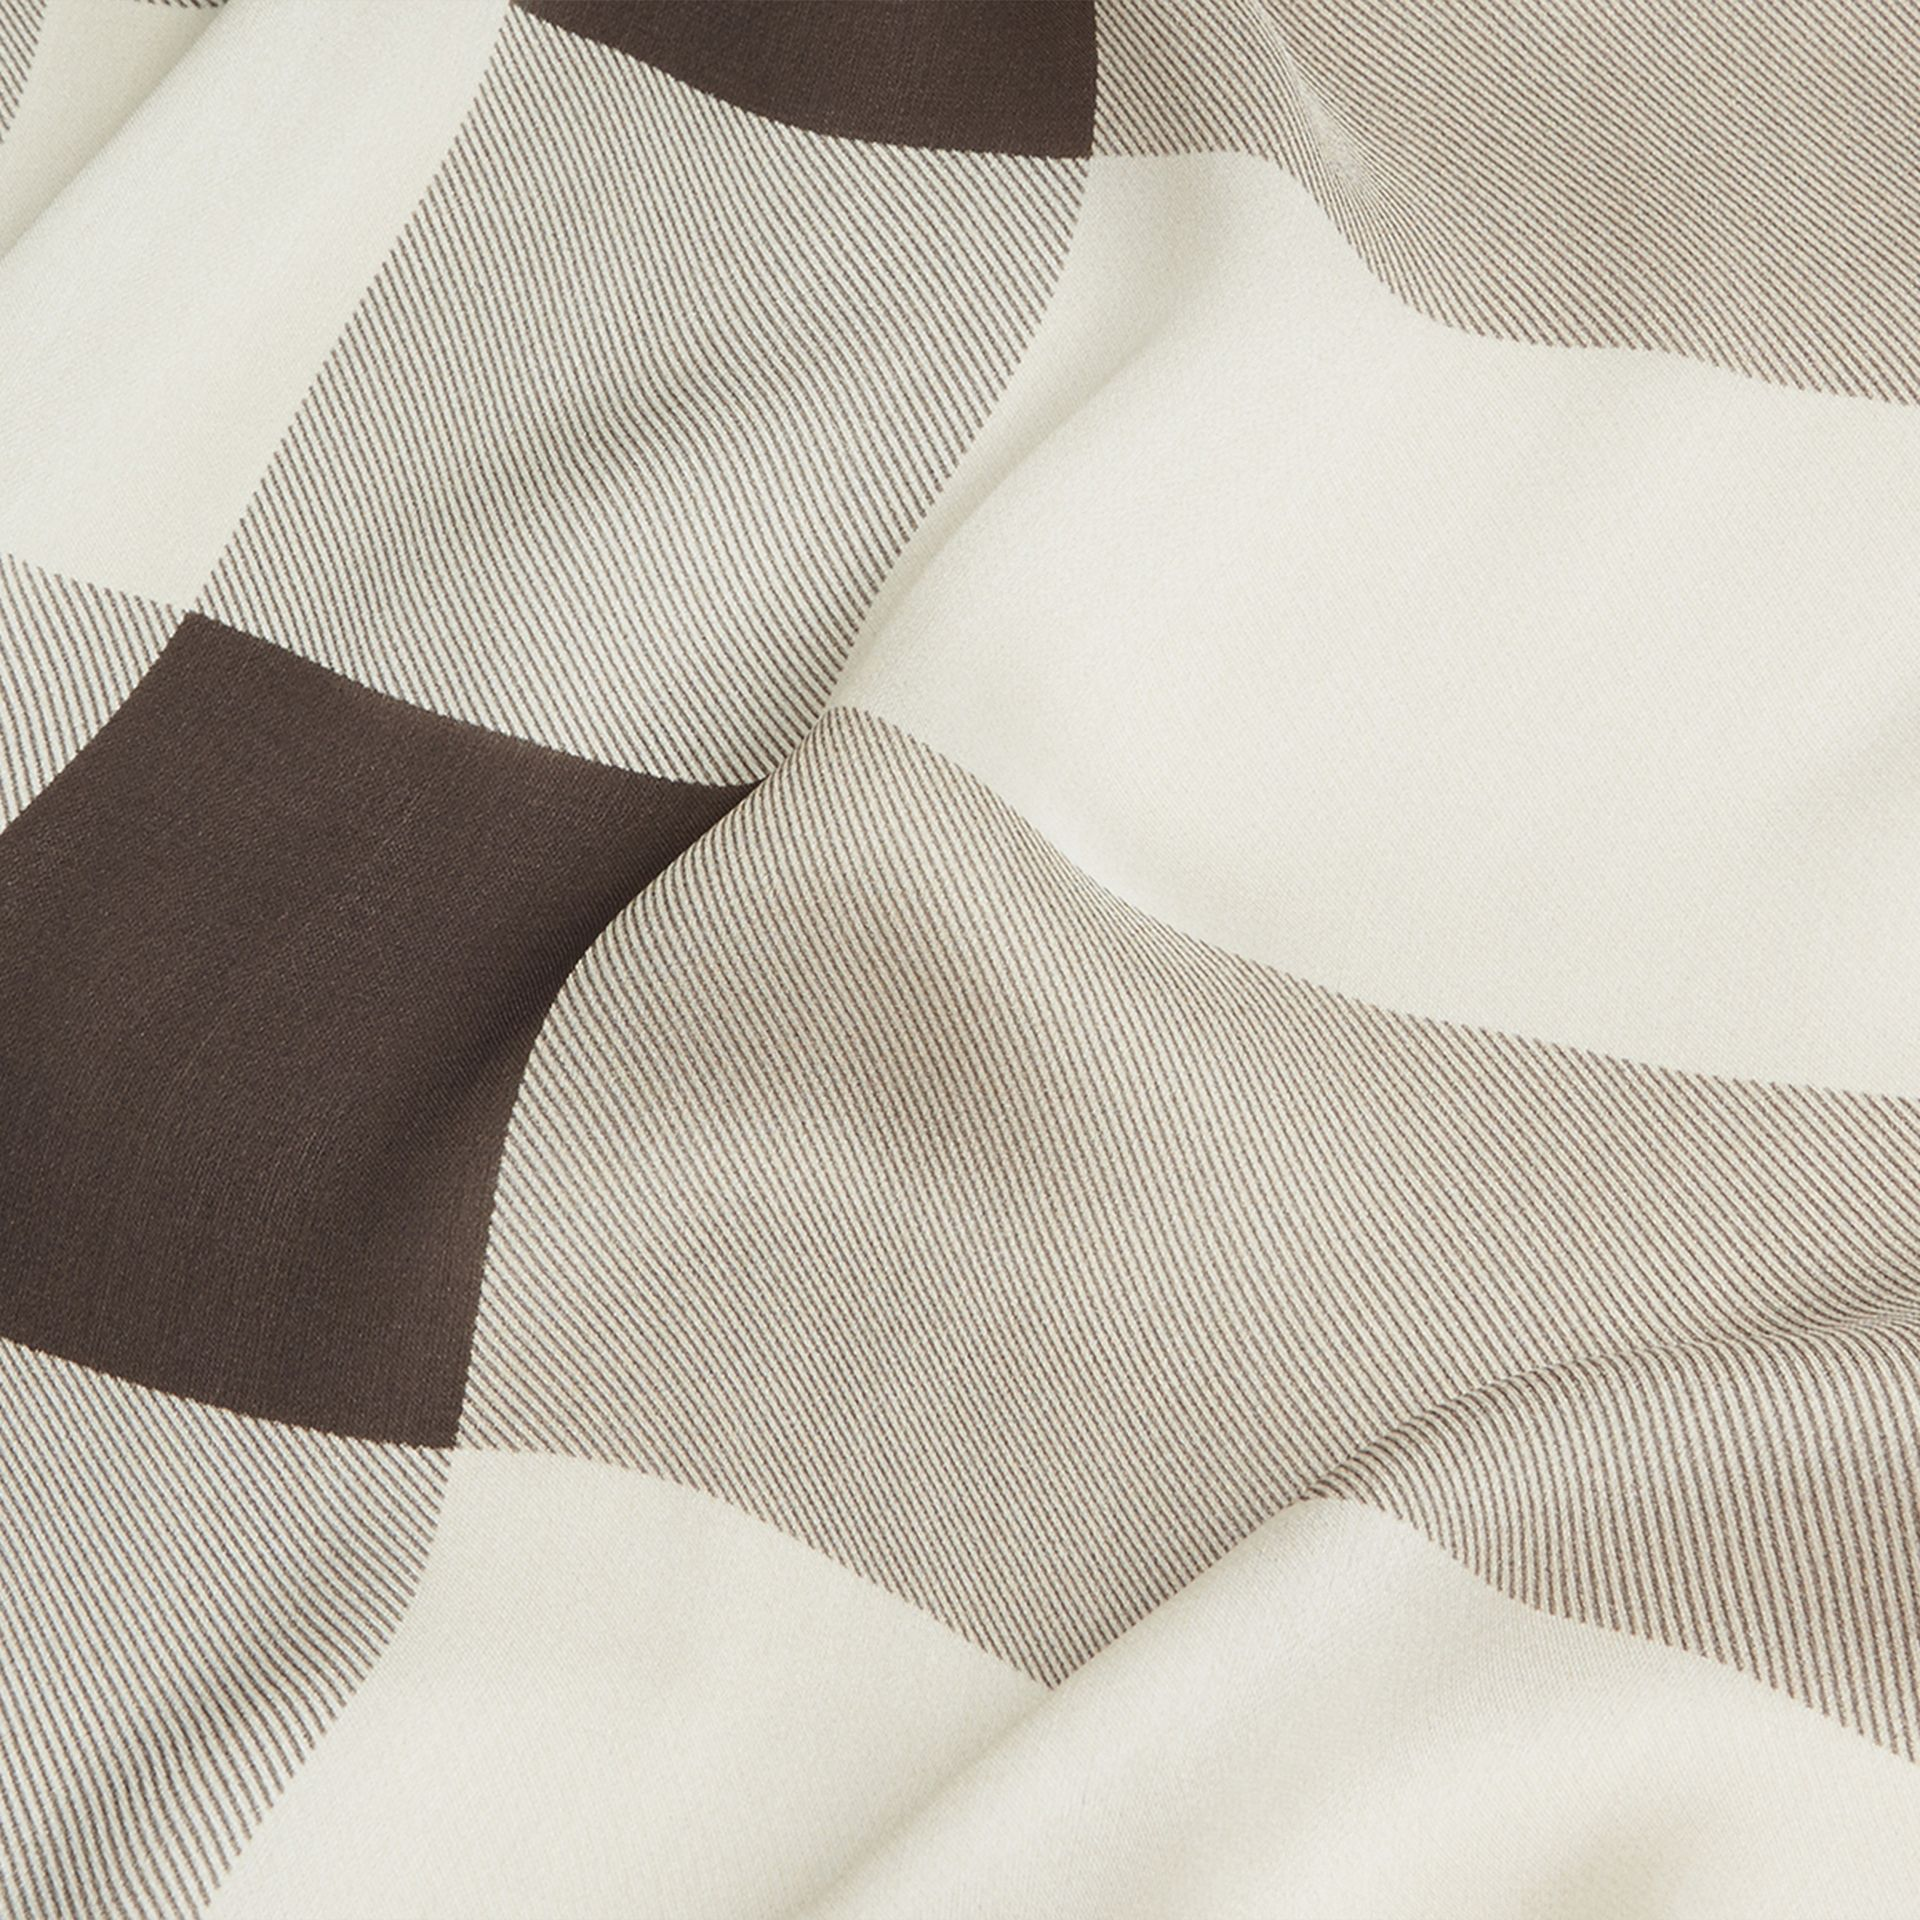 Lightweight Check Silk Scarf in Stone - Women | Burberry Singapore - gallery image 2